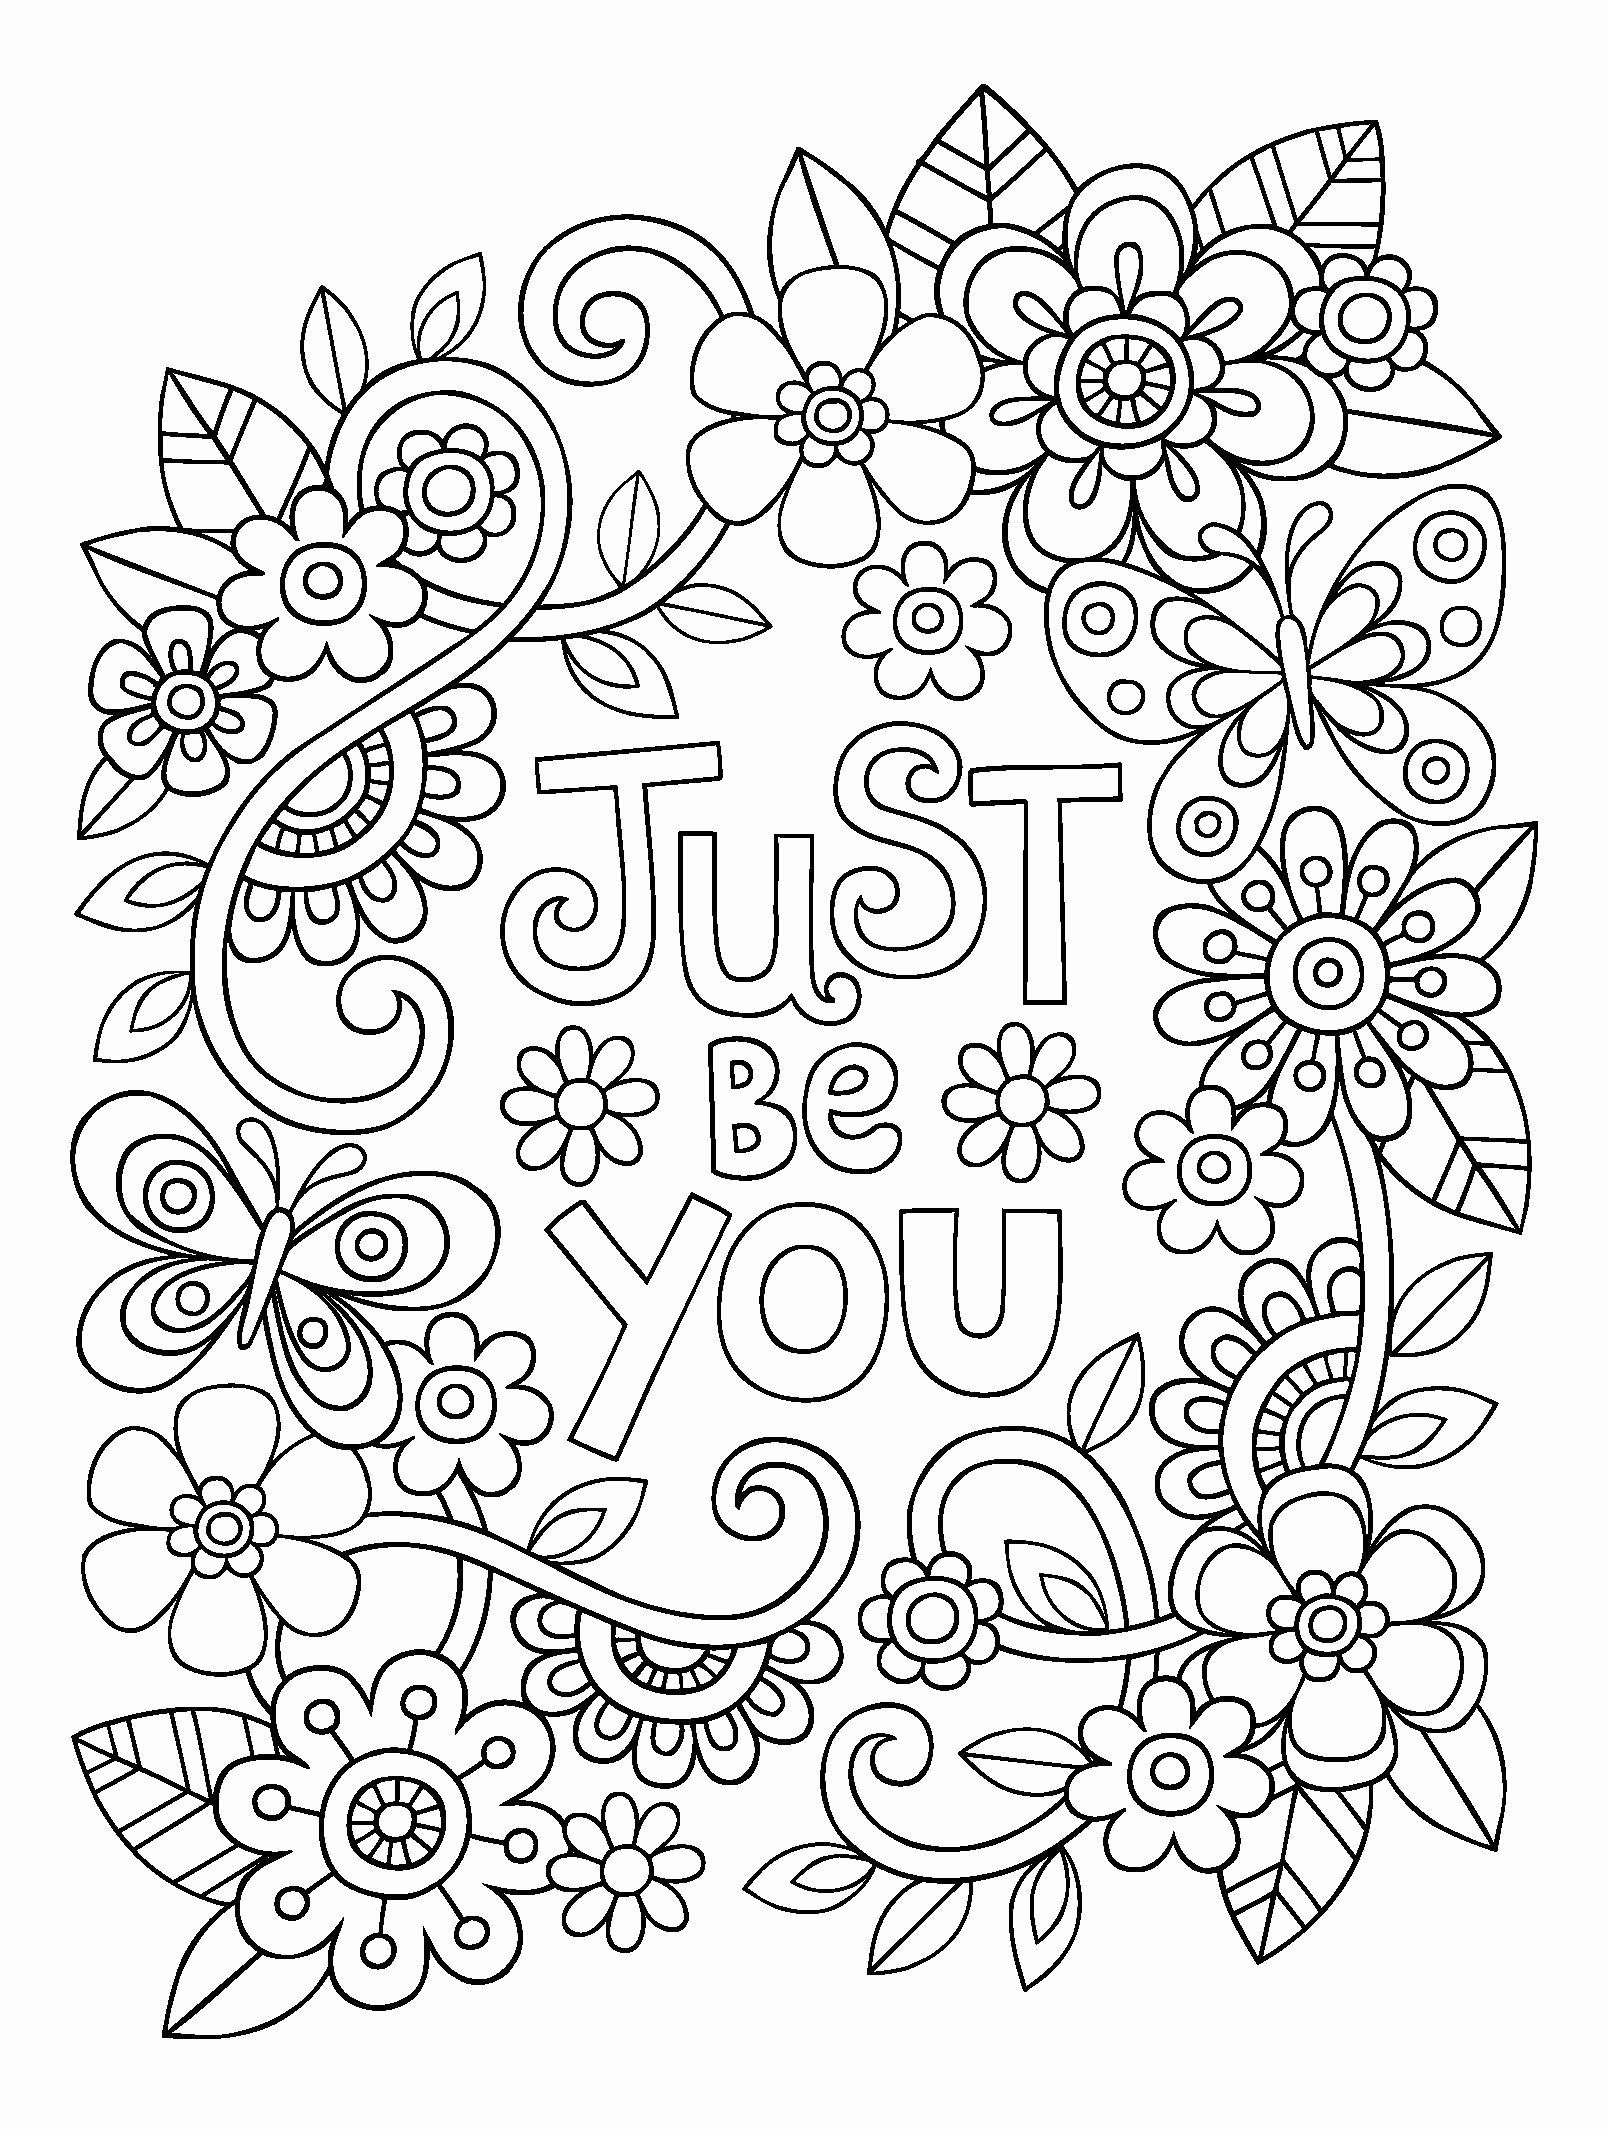 21 Printable Inspirational Coloring Pages Hellboyfull Org Coloring Pages Inspirational Quote Coloring Pages Mandala Coloring Pages [ 2129 x 1608 Pixel ]